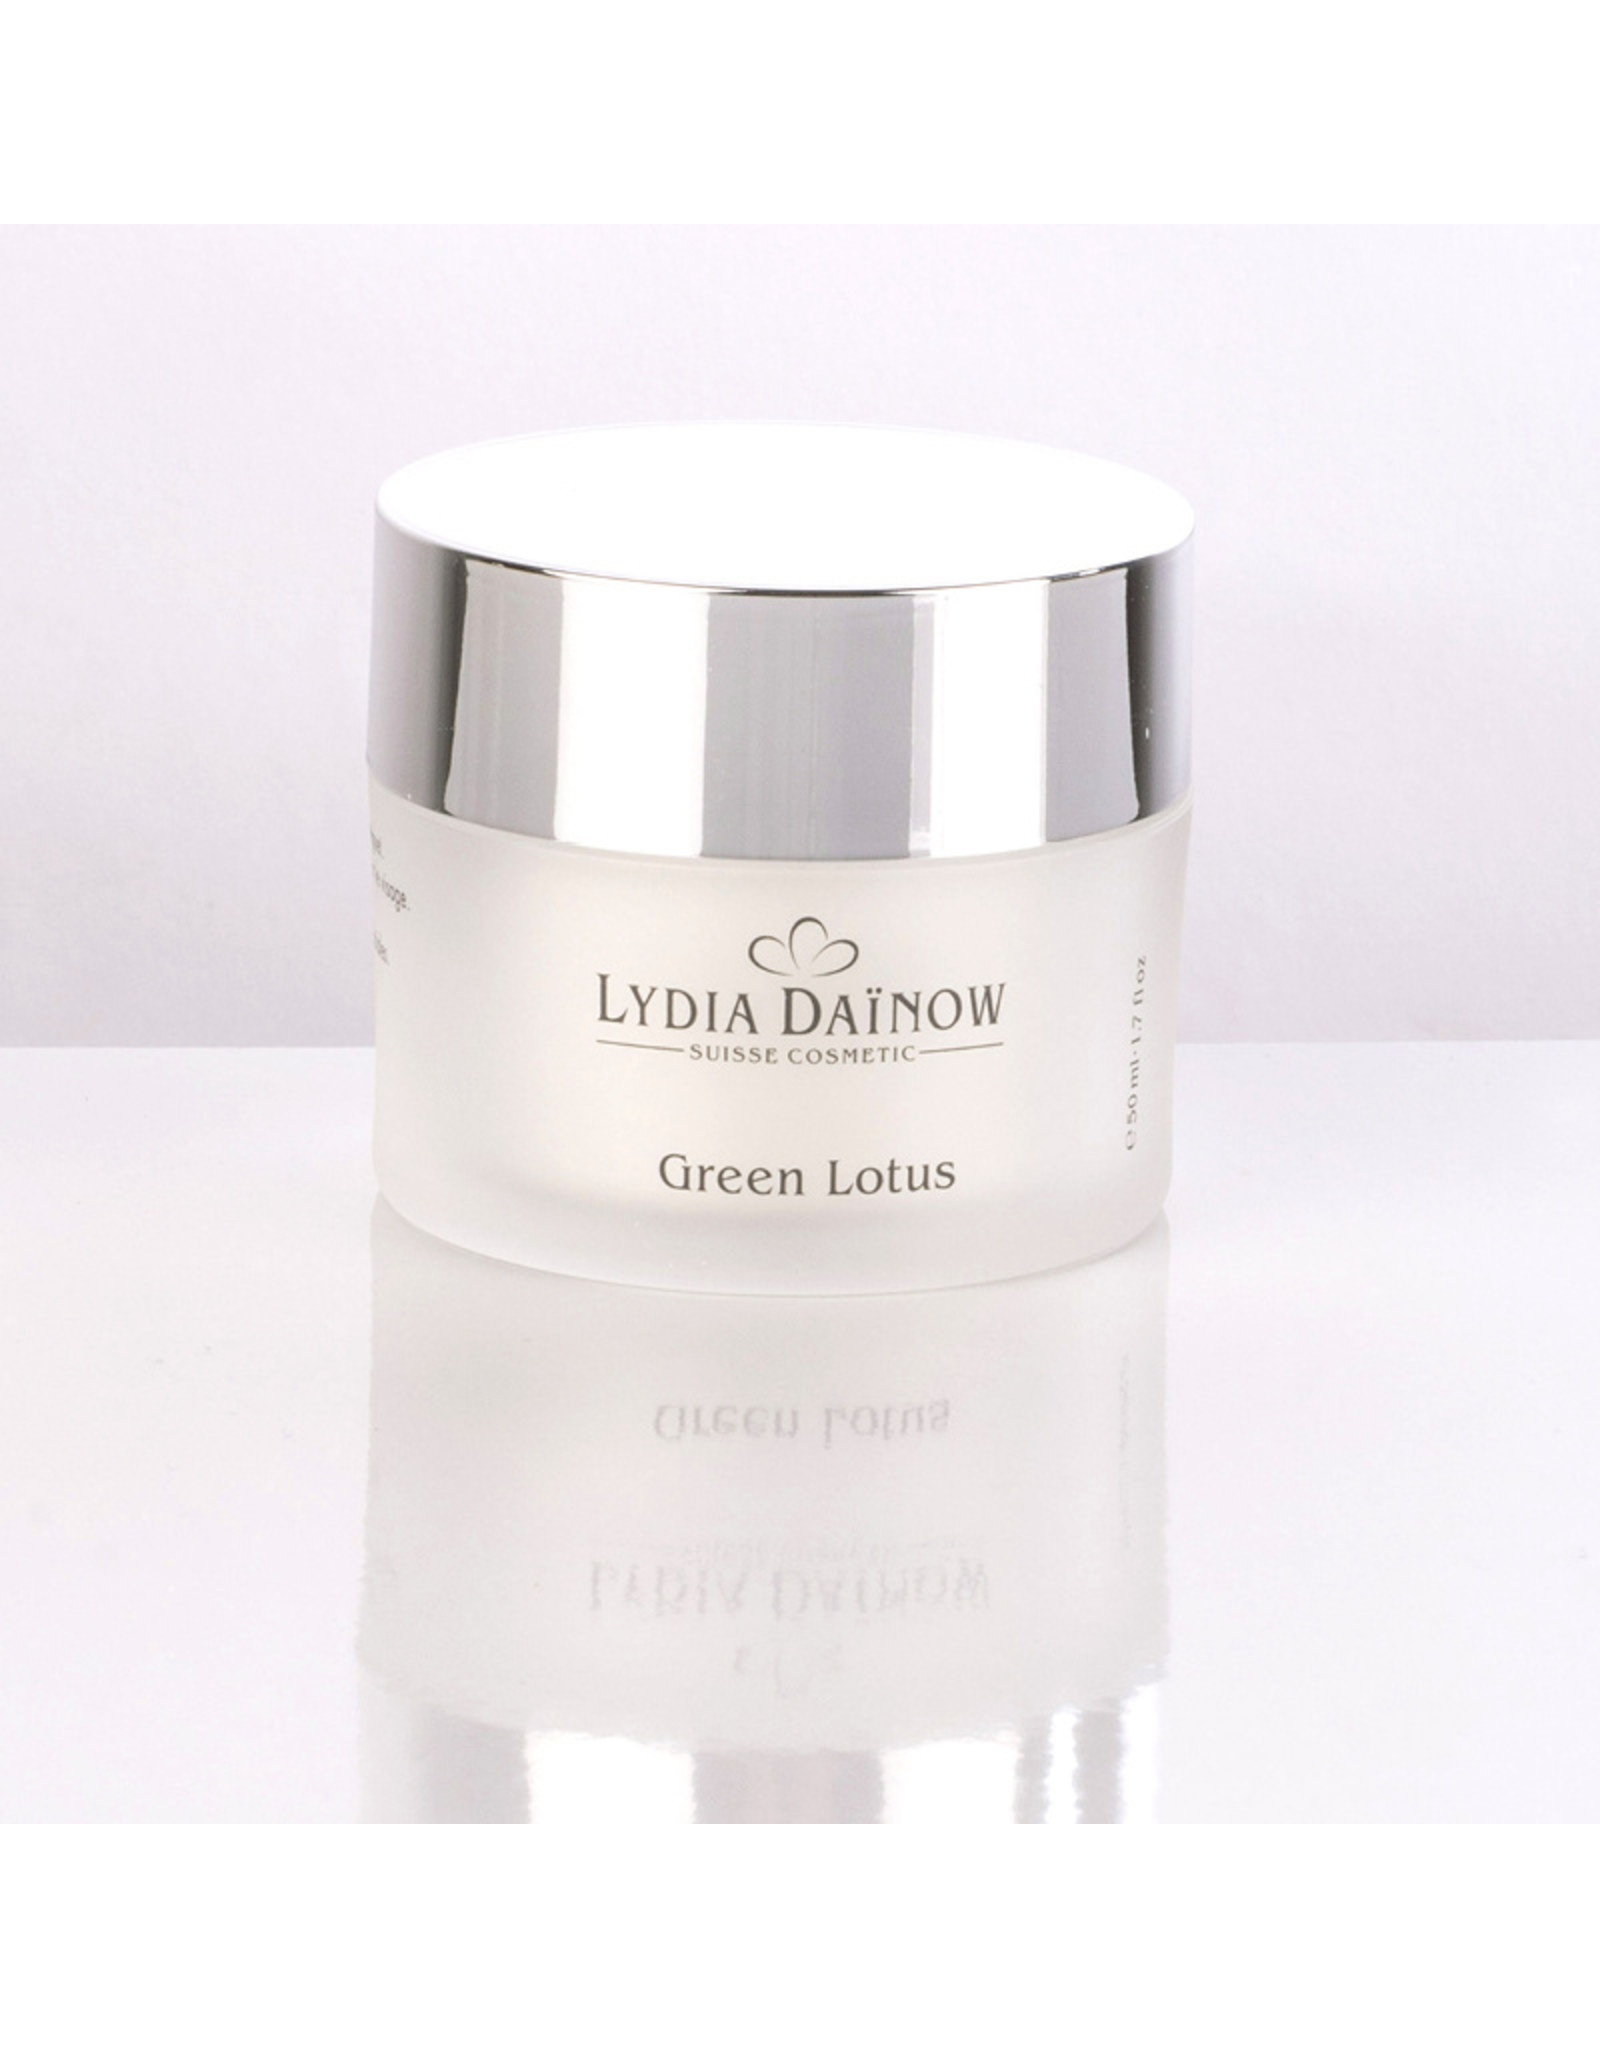 Lydïa Dainow Green Lotus - Crème protectrice